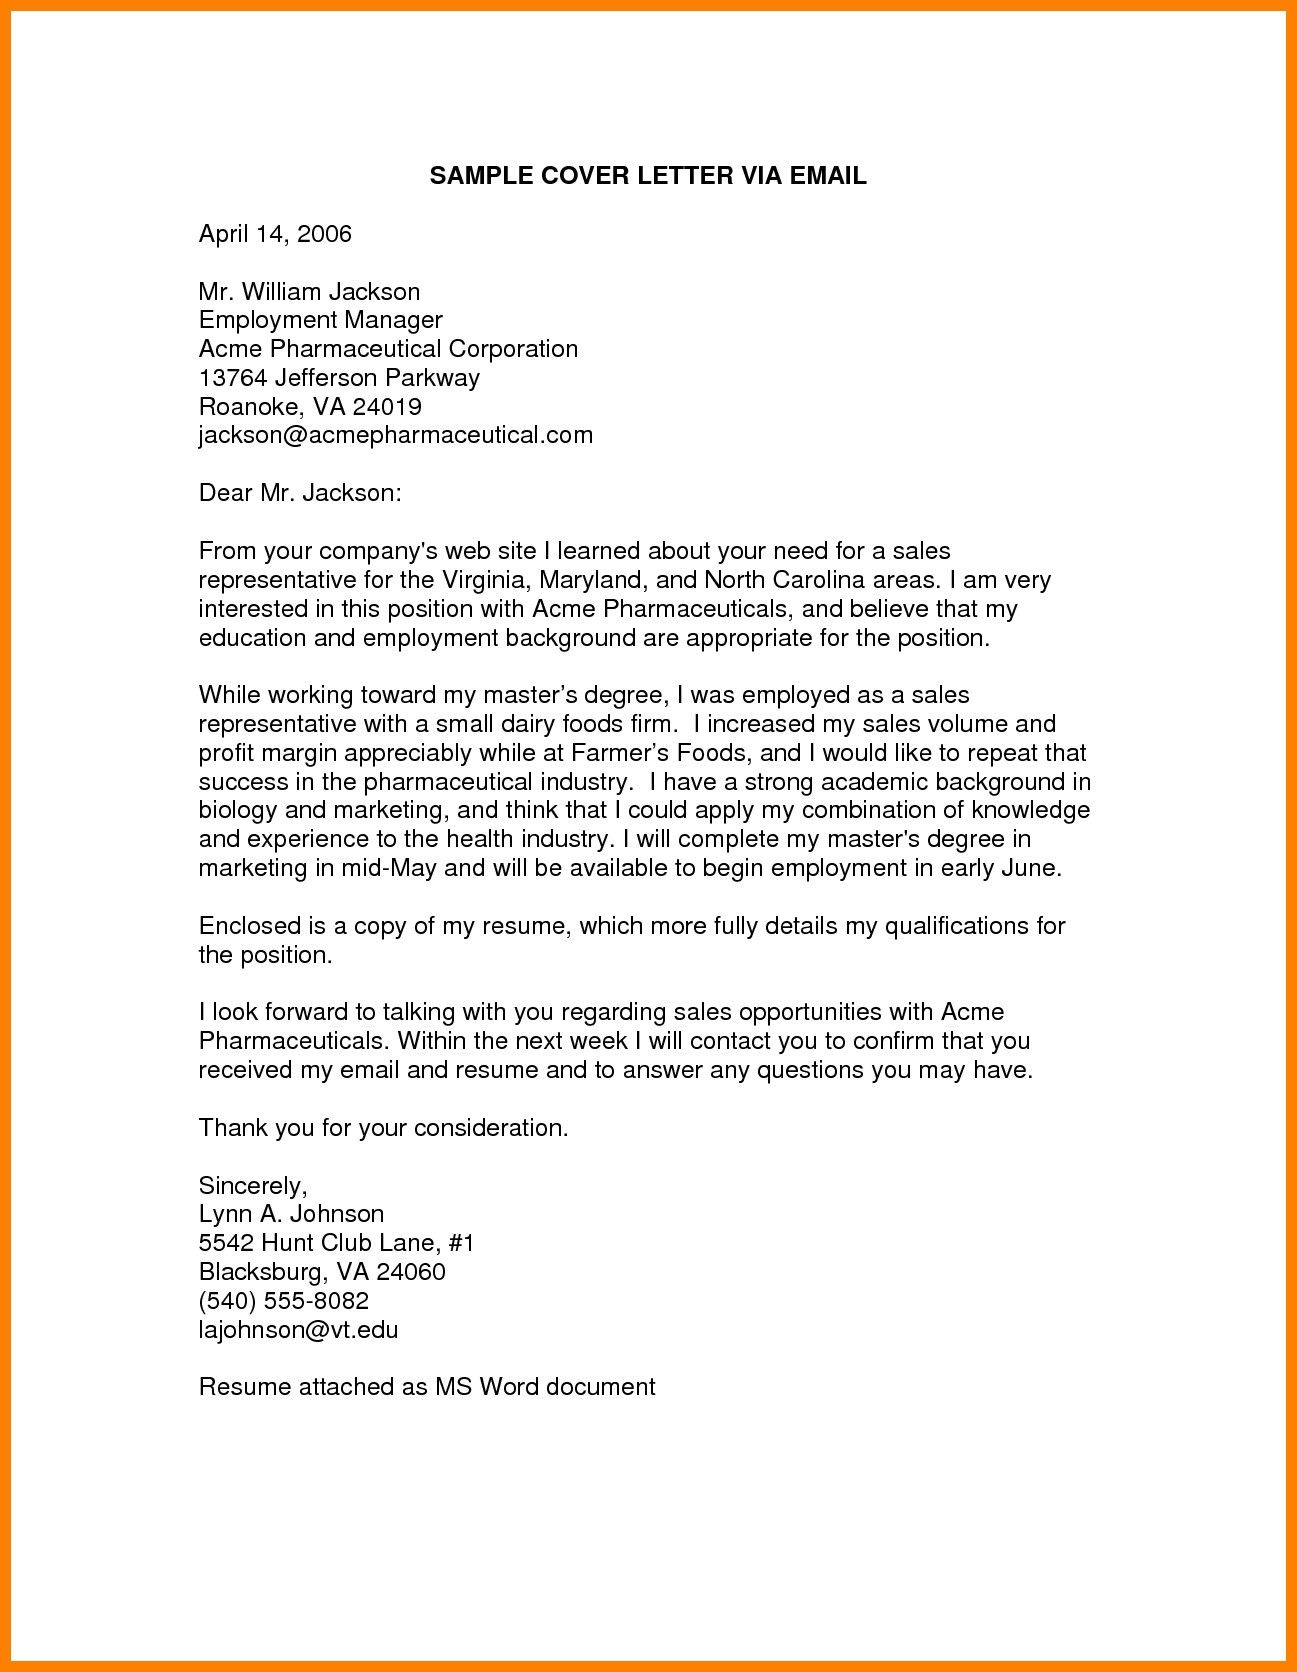 25 Email Cover Letter Cover Letter For Resume Job Cover Letter Job Application Cover Letter